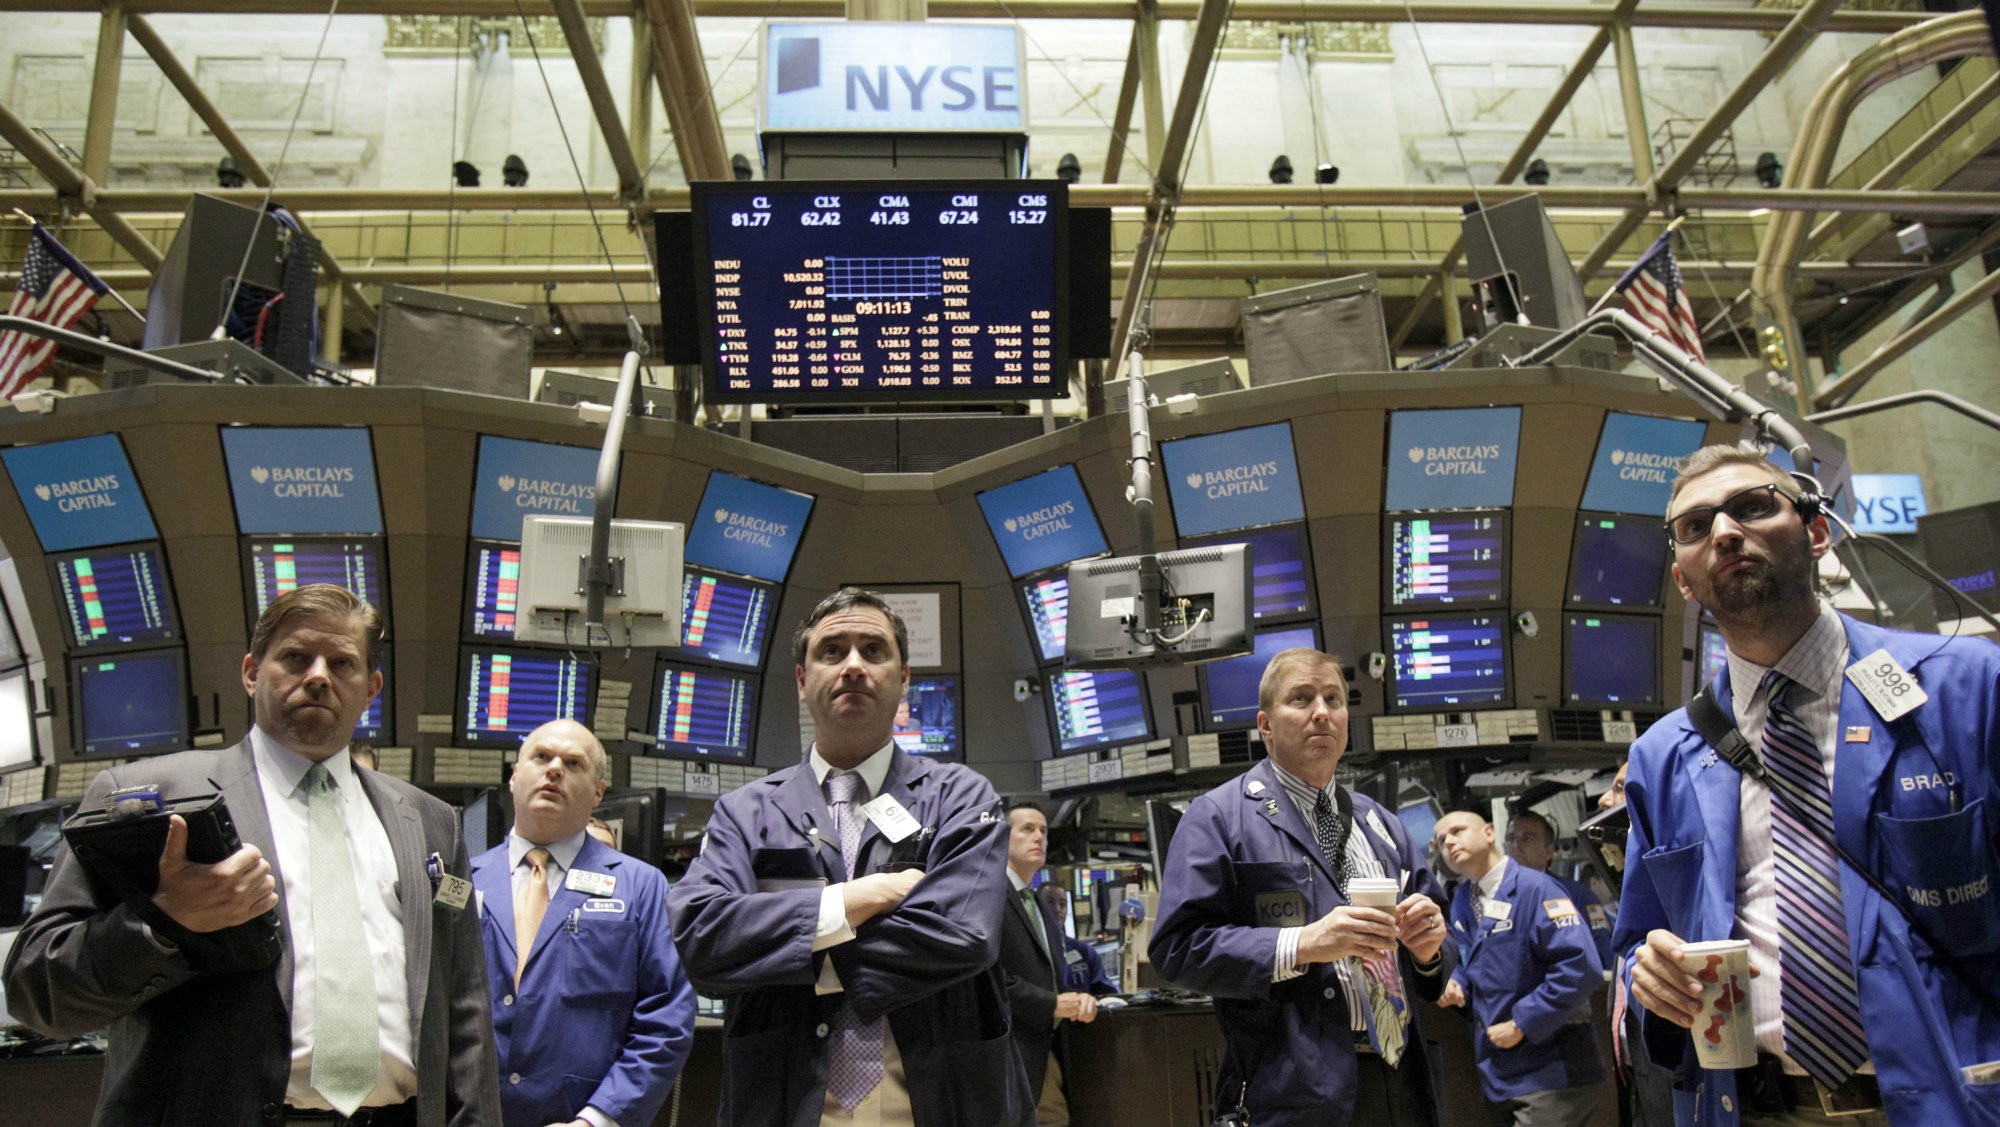 Why The New York Stock Exchange Nyse Still Has Human